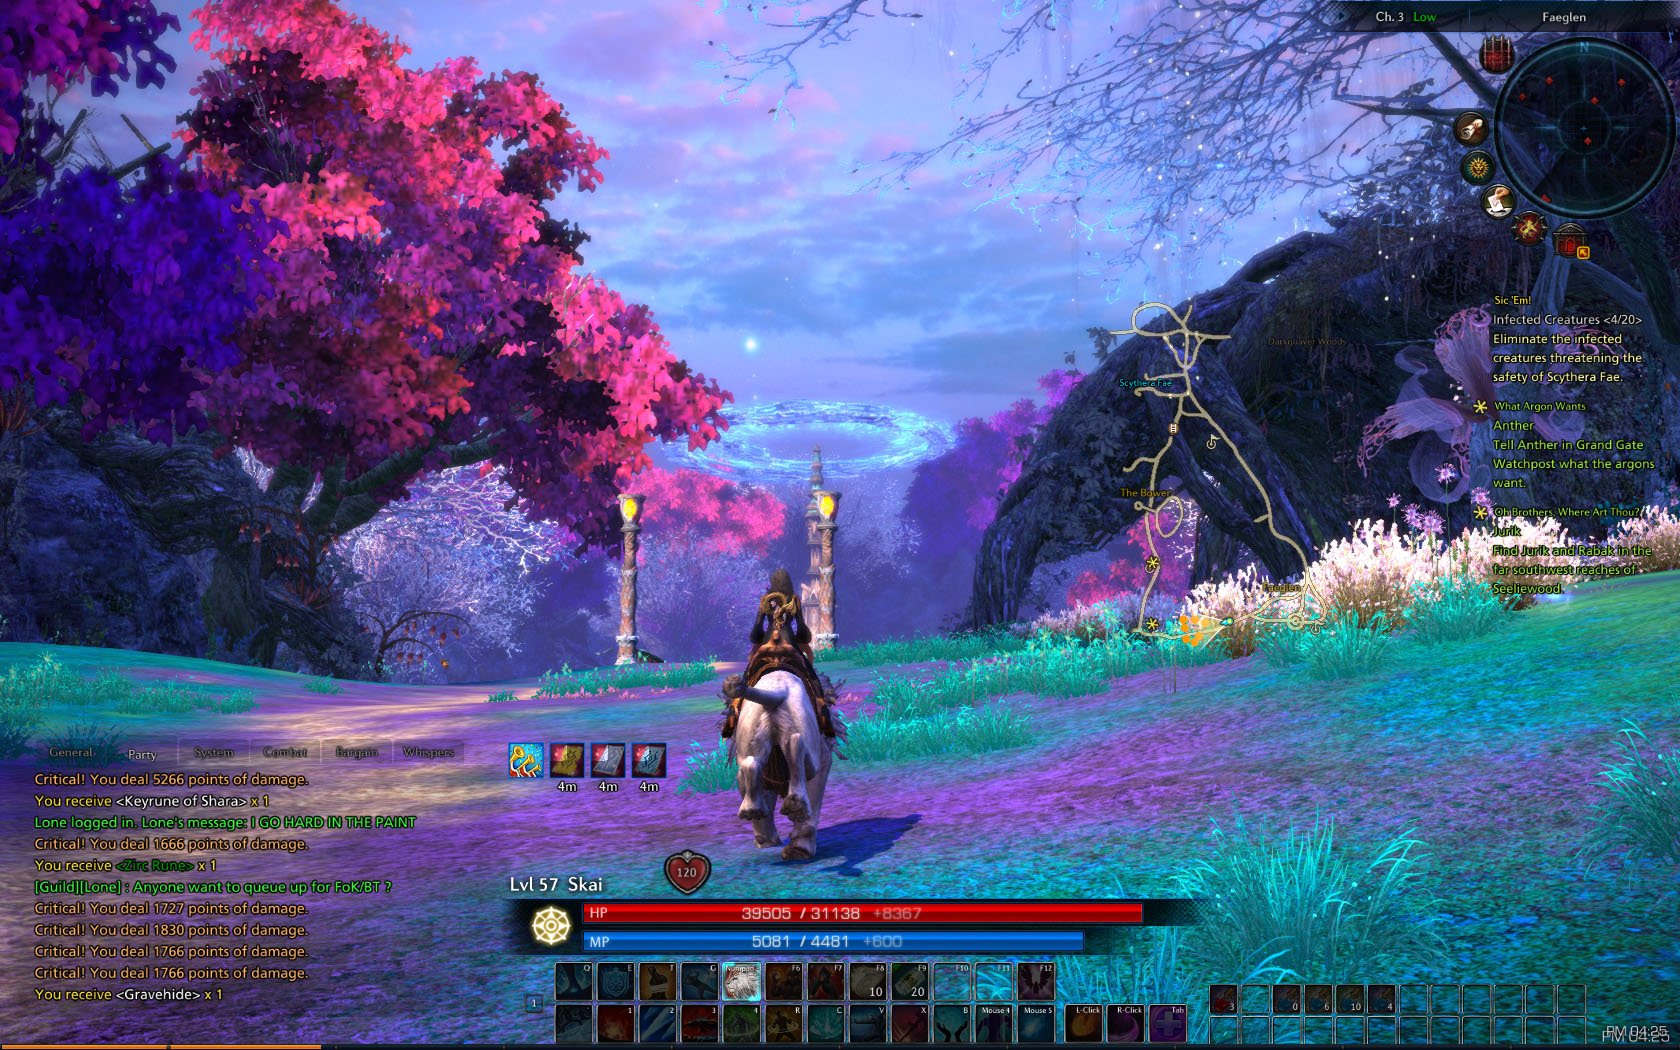 skai games opening gameplay trailer experience preview online media removed heres tera